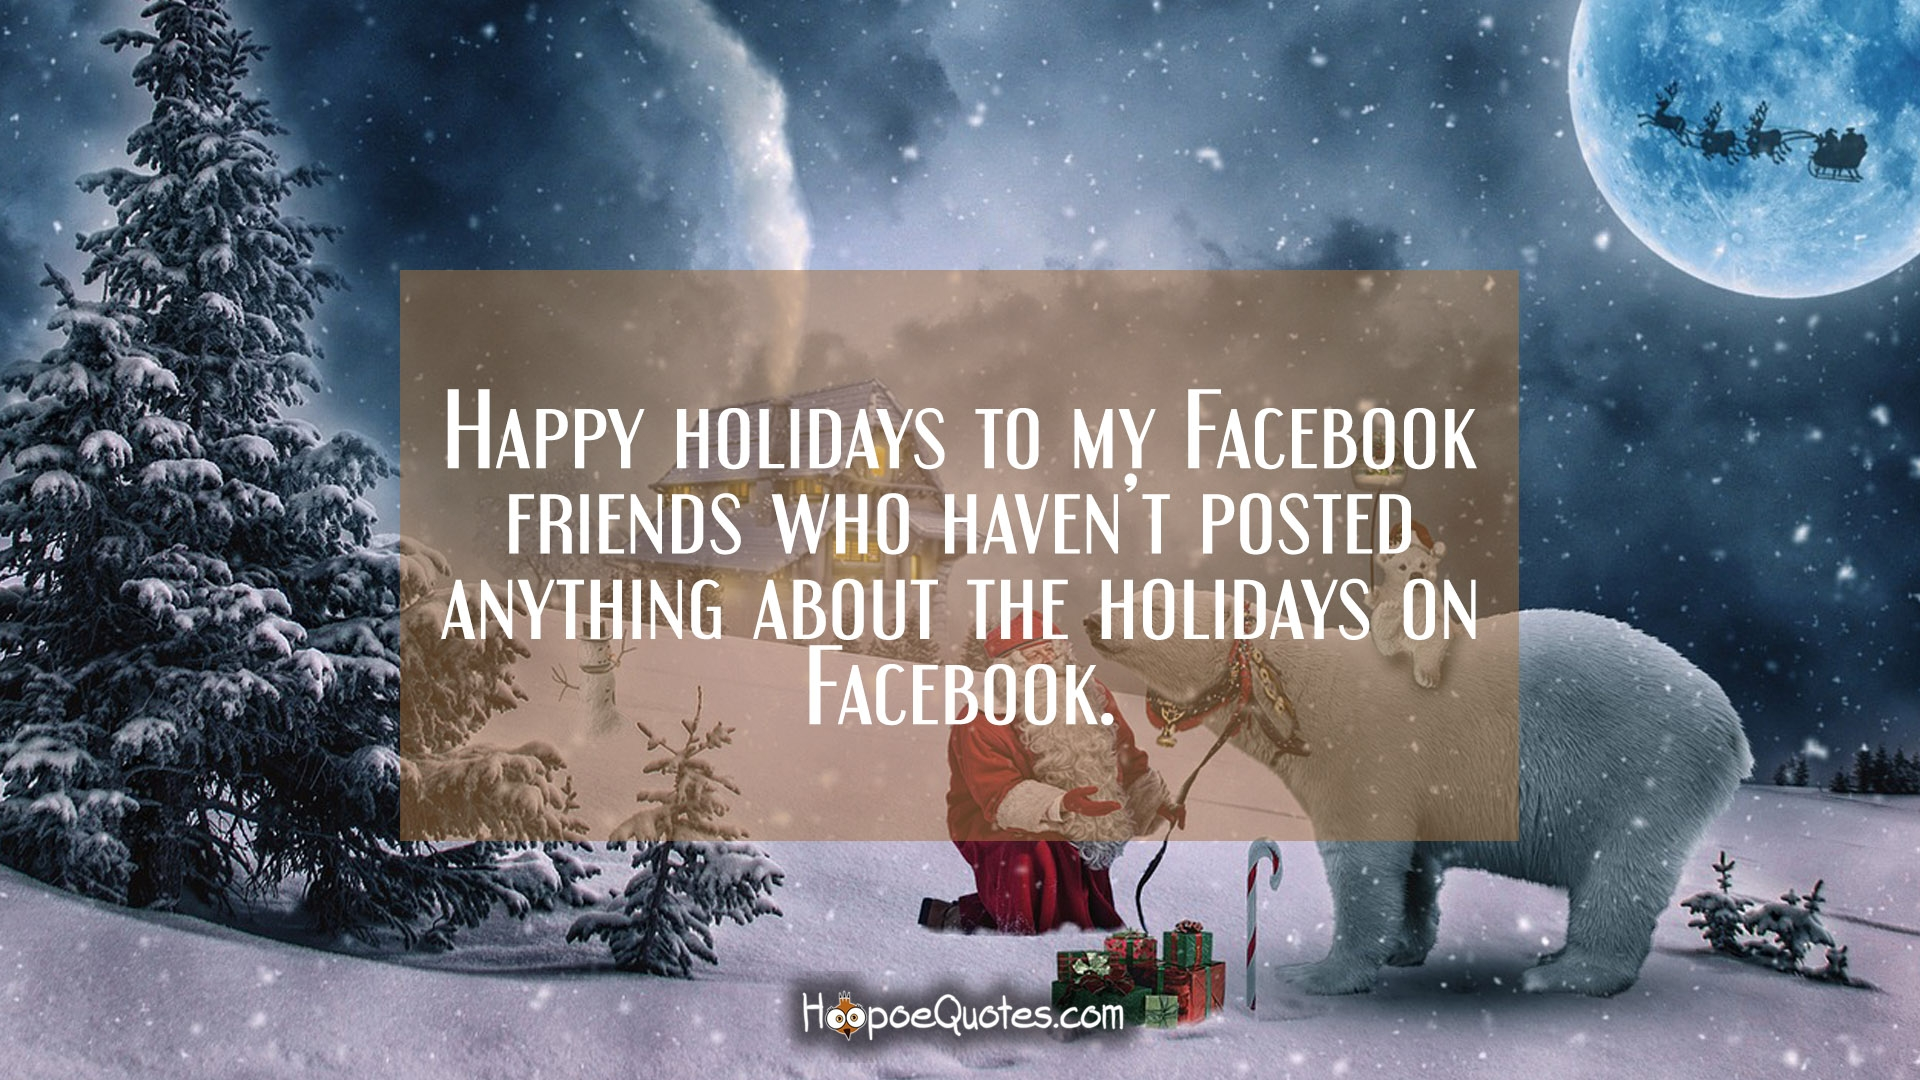 Download Wallpaper Positive Quotes Happy Holidays To My Facebook Friends Who Haven T Posted